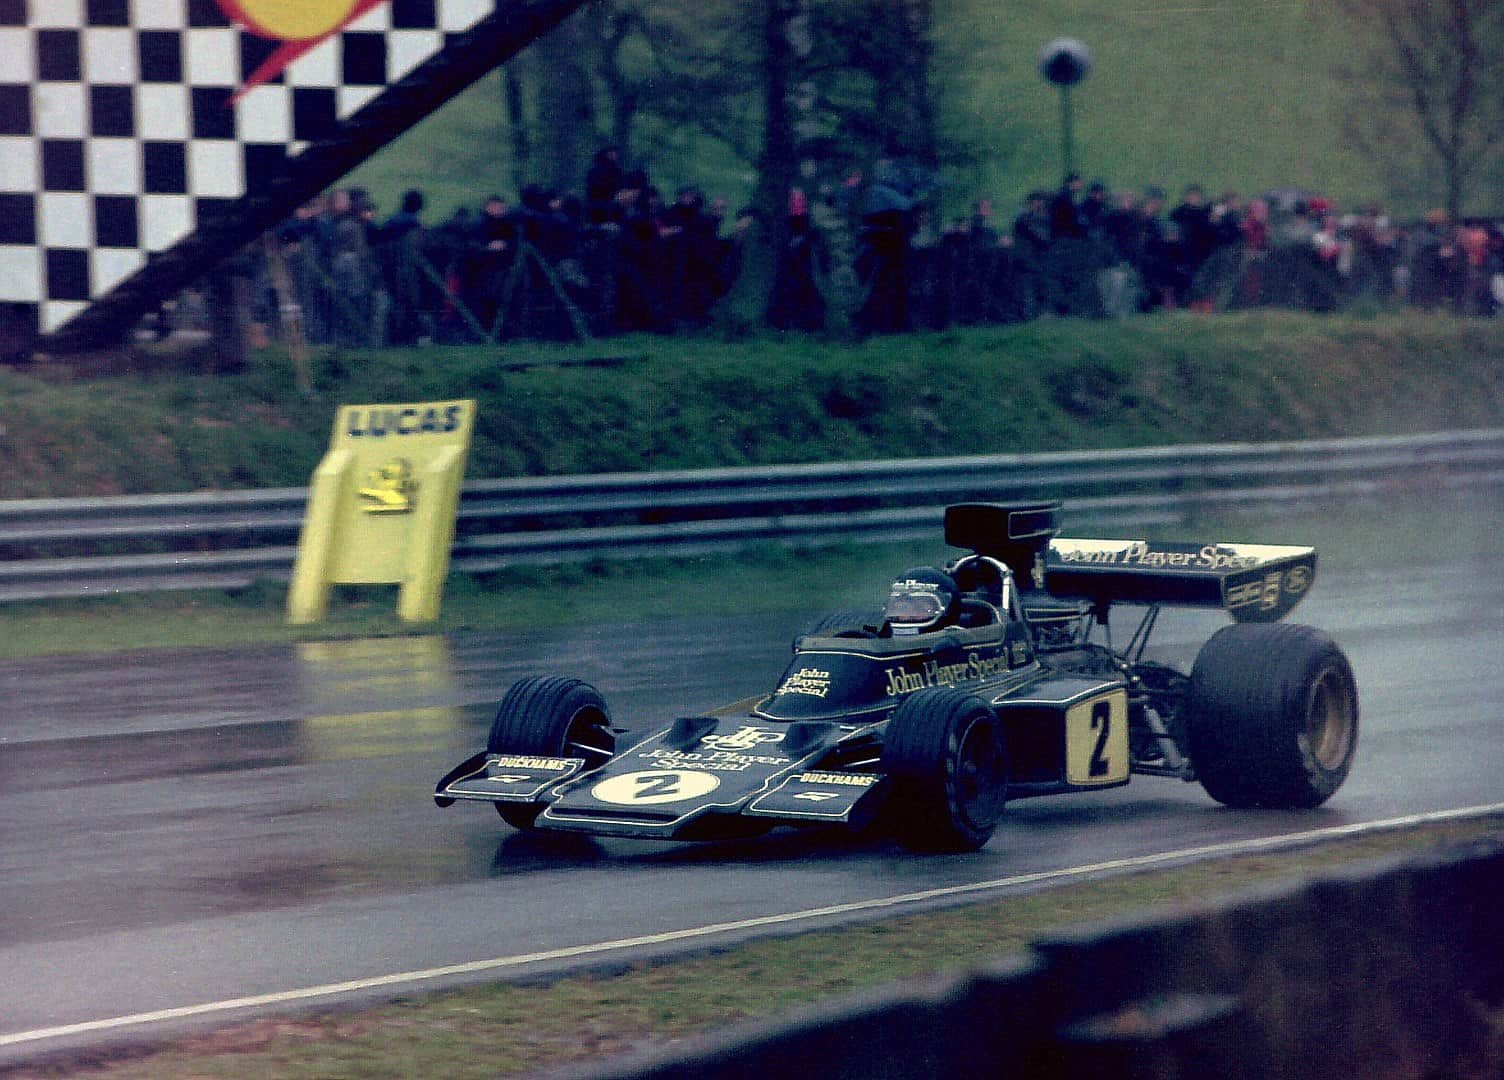 Belgium Facts, Jackie Ickx 1974 Race of Champions